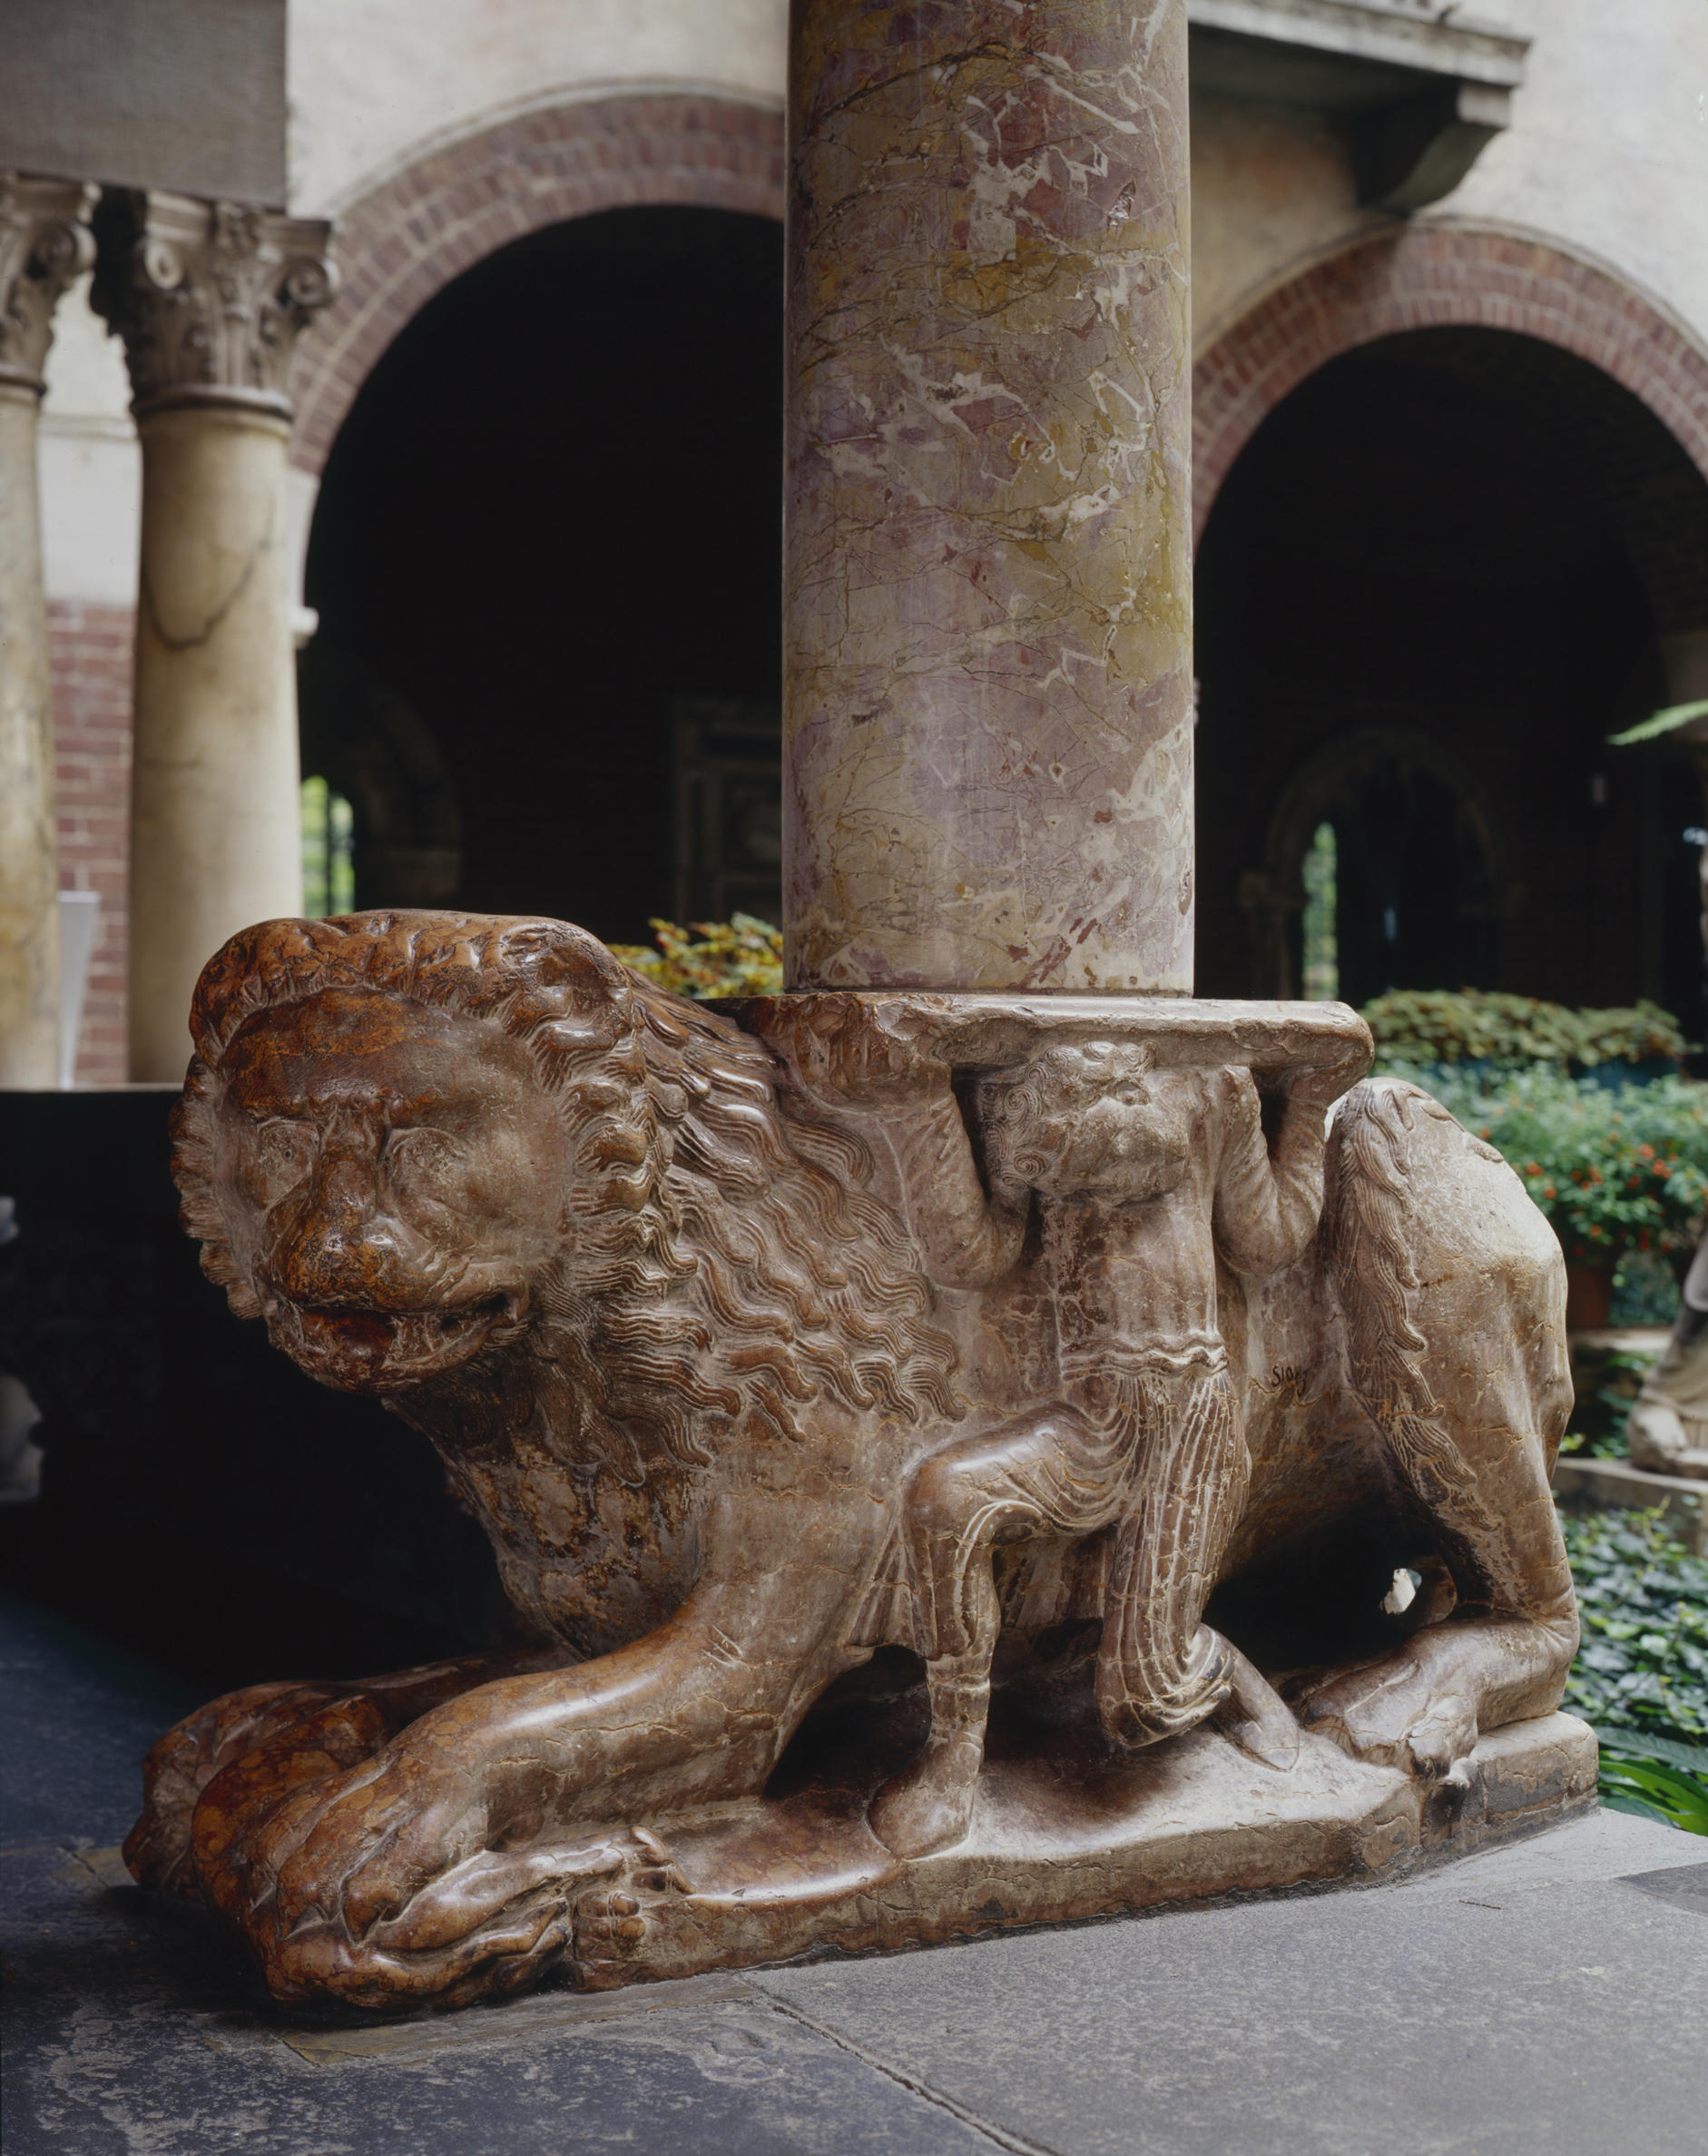 Italian, Northern Italy, Stylobate Lion, late 12th century–early 13th century